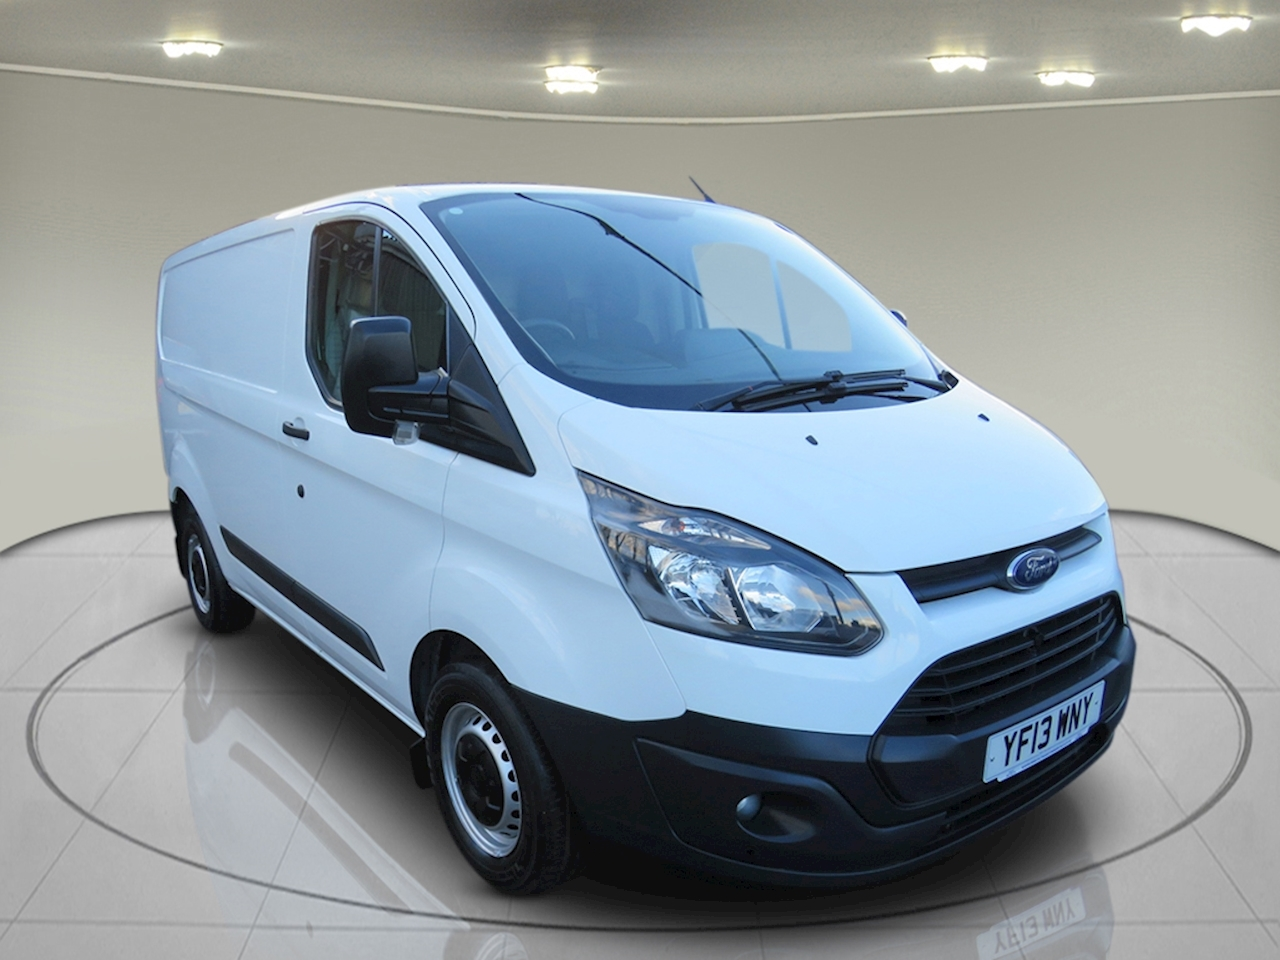 Ford 2.2 TDCi 310 ECOnetic Panel Van 5dr Diesel Manual L2 H1 (162 g/km, 98 bhp)